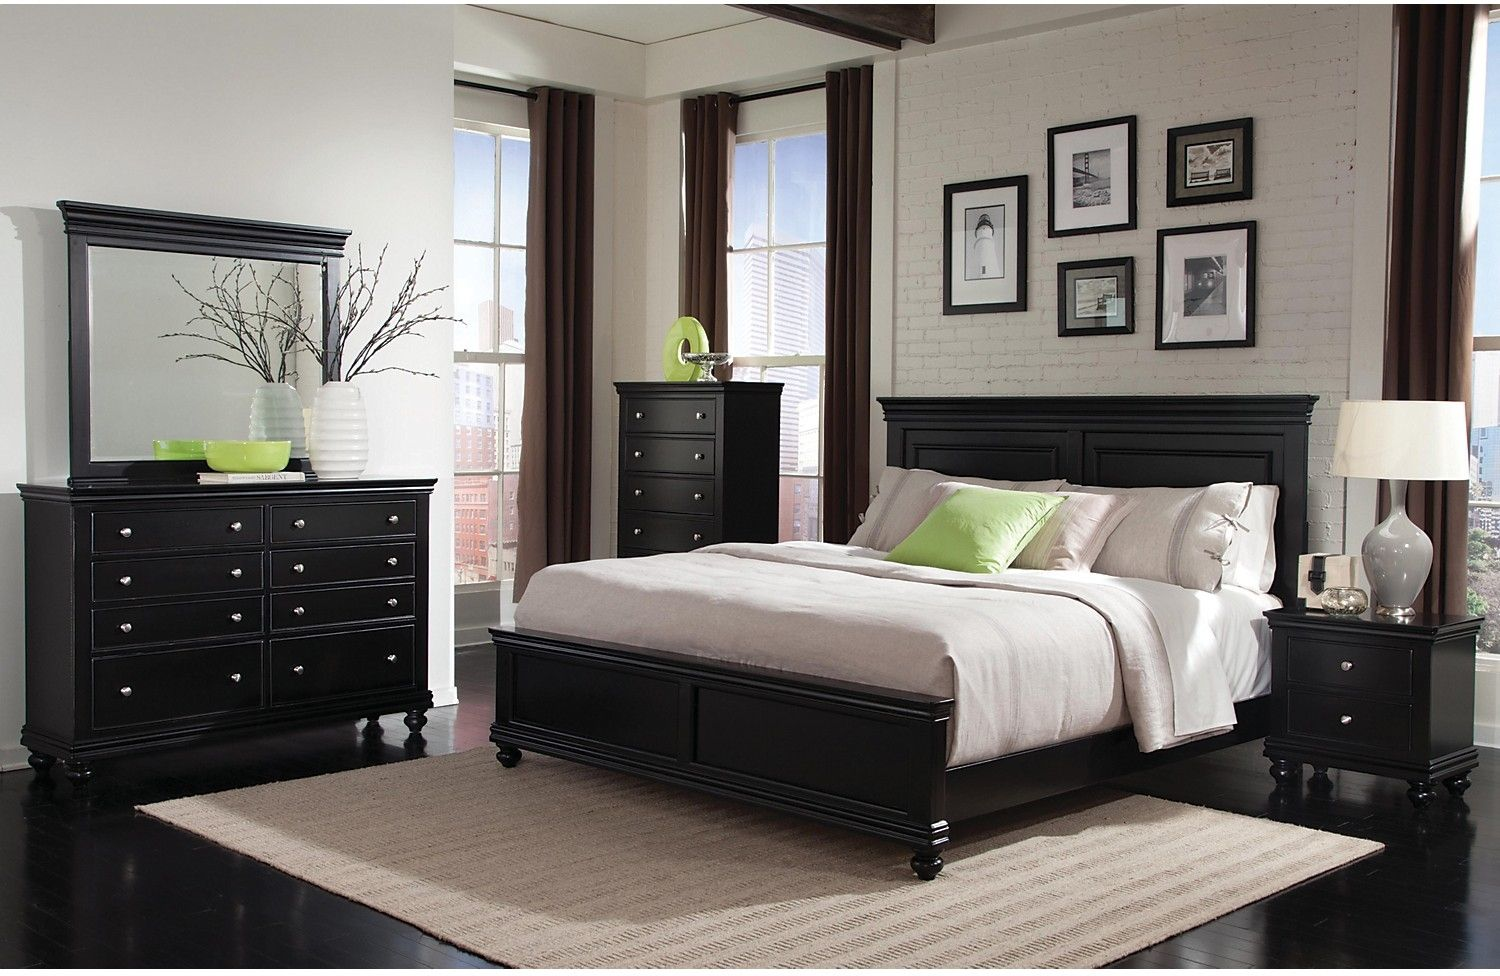 25 Dark Wood Bedroom Furniture Decorating Ideas  Black furniture Bedrooms and